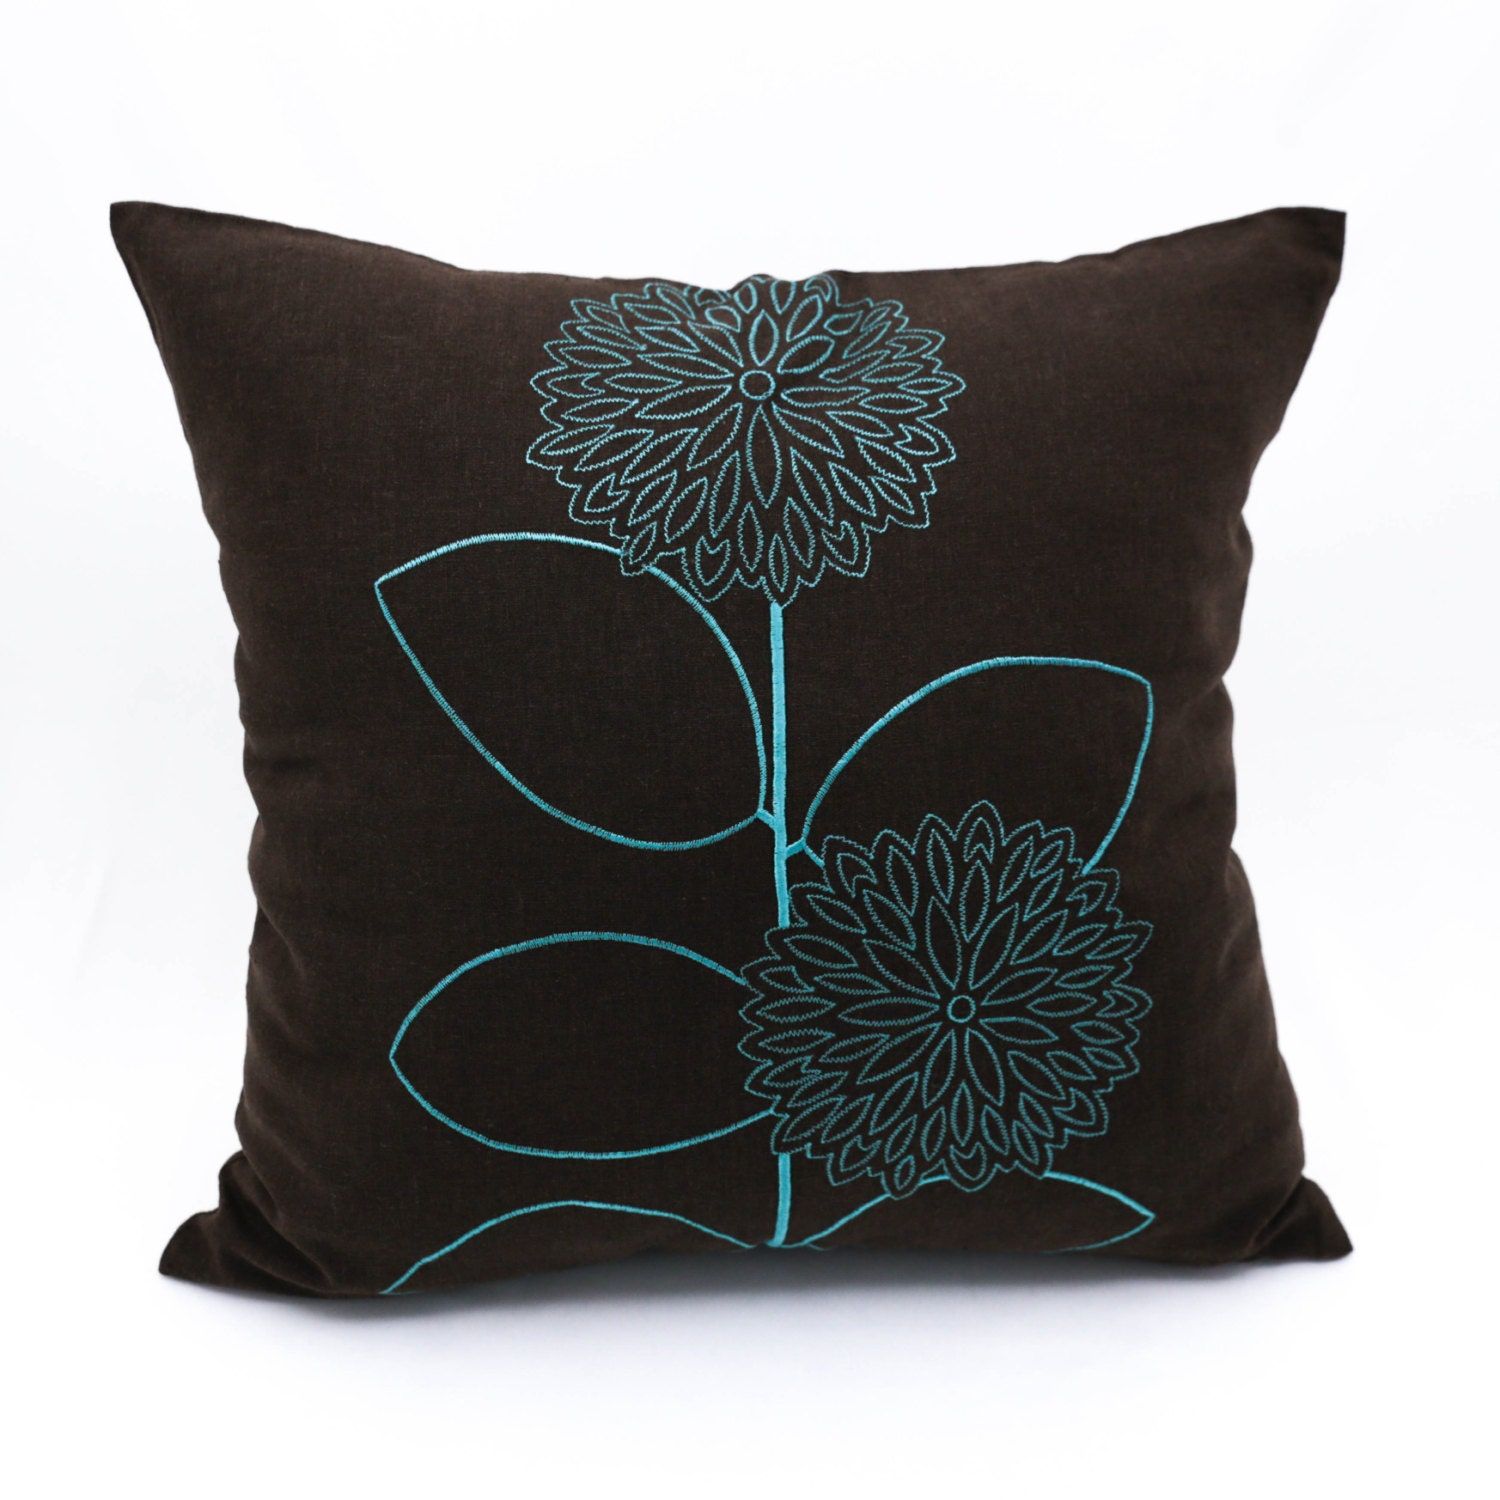 Throw Pillow Covers Teal : Teal Throw Pillow Cover Dark Brown Linen Pillow Floral